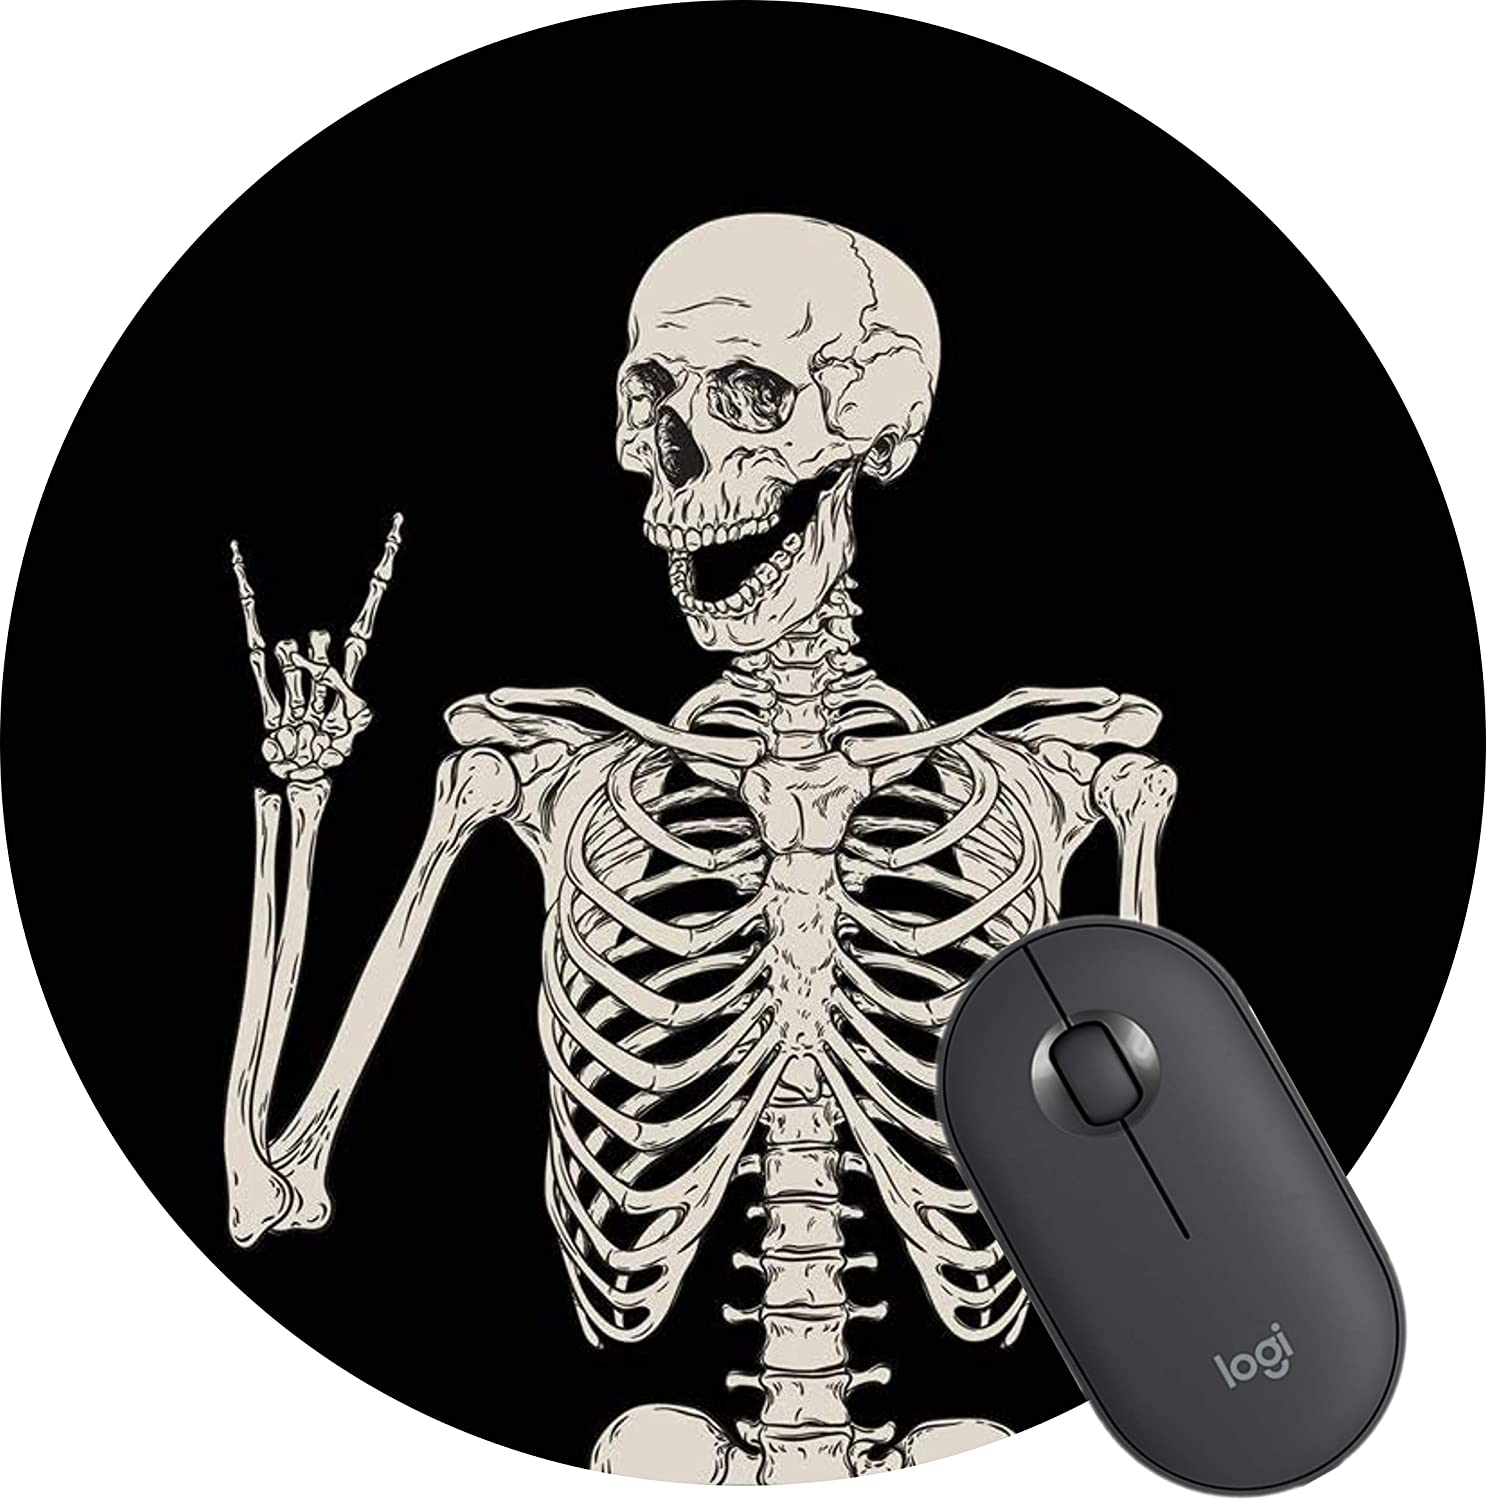 Skull Human Skeleton Mouse Mat Office Max 65% OFF quality assurance Mousepad Pad Gaming